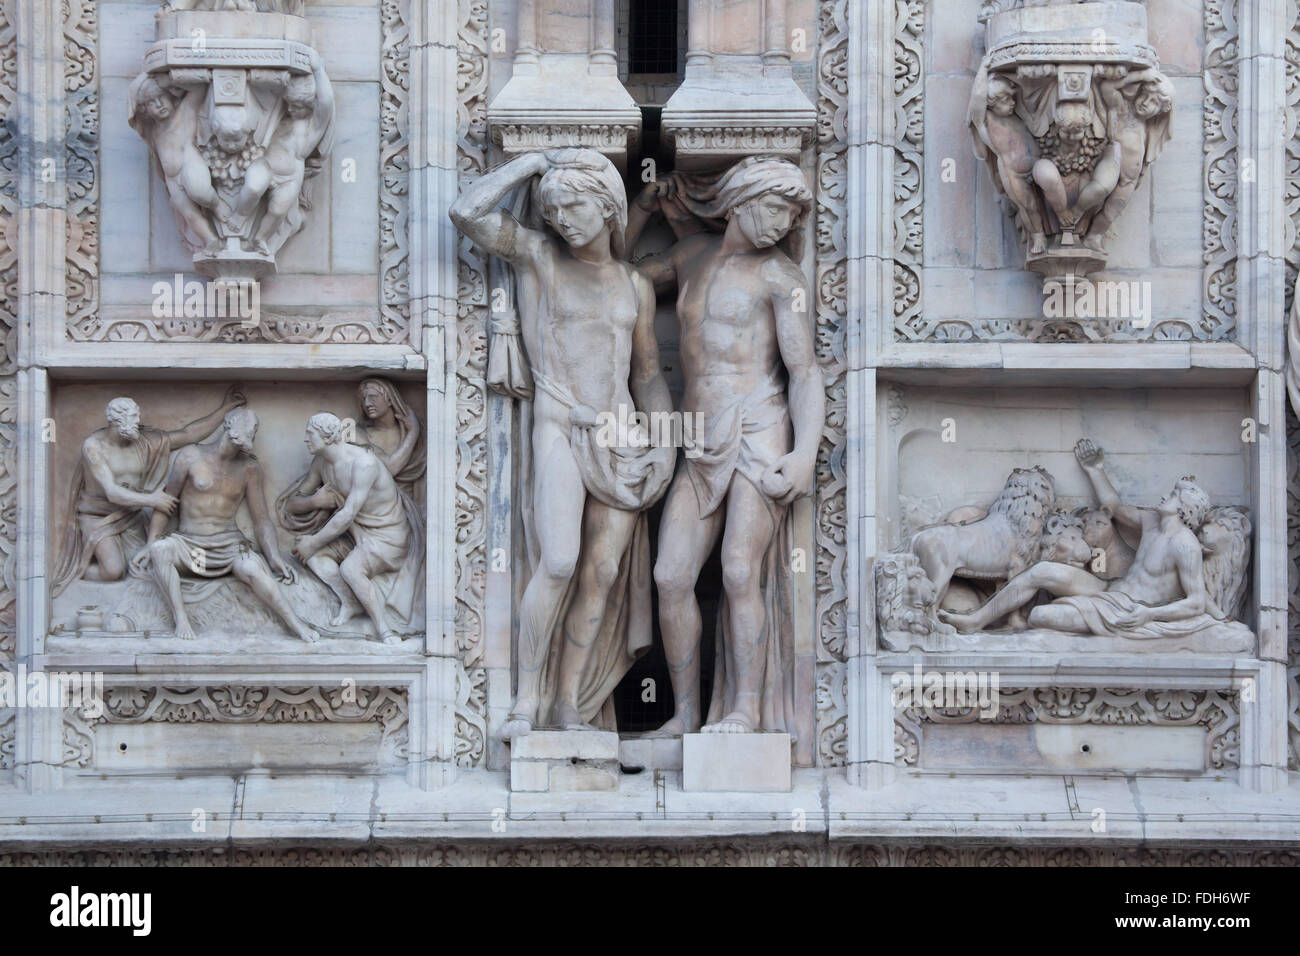 Atlantes supporting the main facade of the Milan Cathedral (Duomo di Milano) in Milan, Lombardy, Italy. Marble relieves - Stock Image